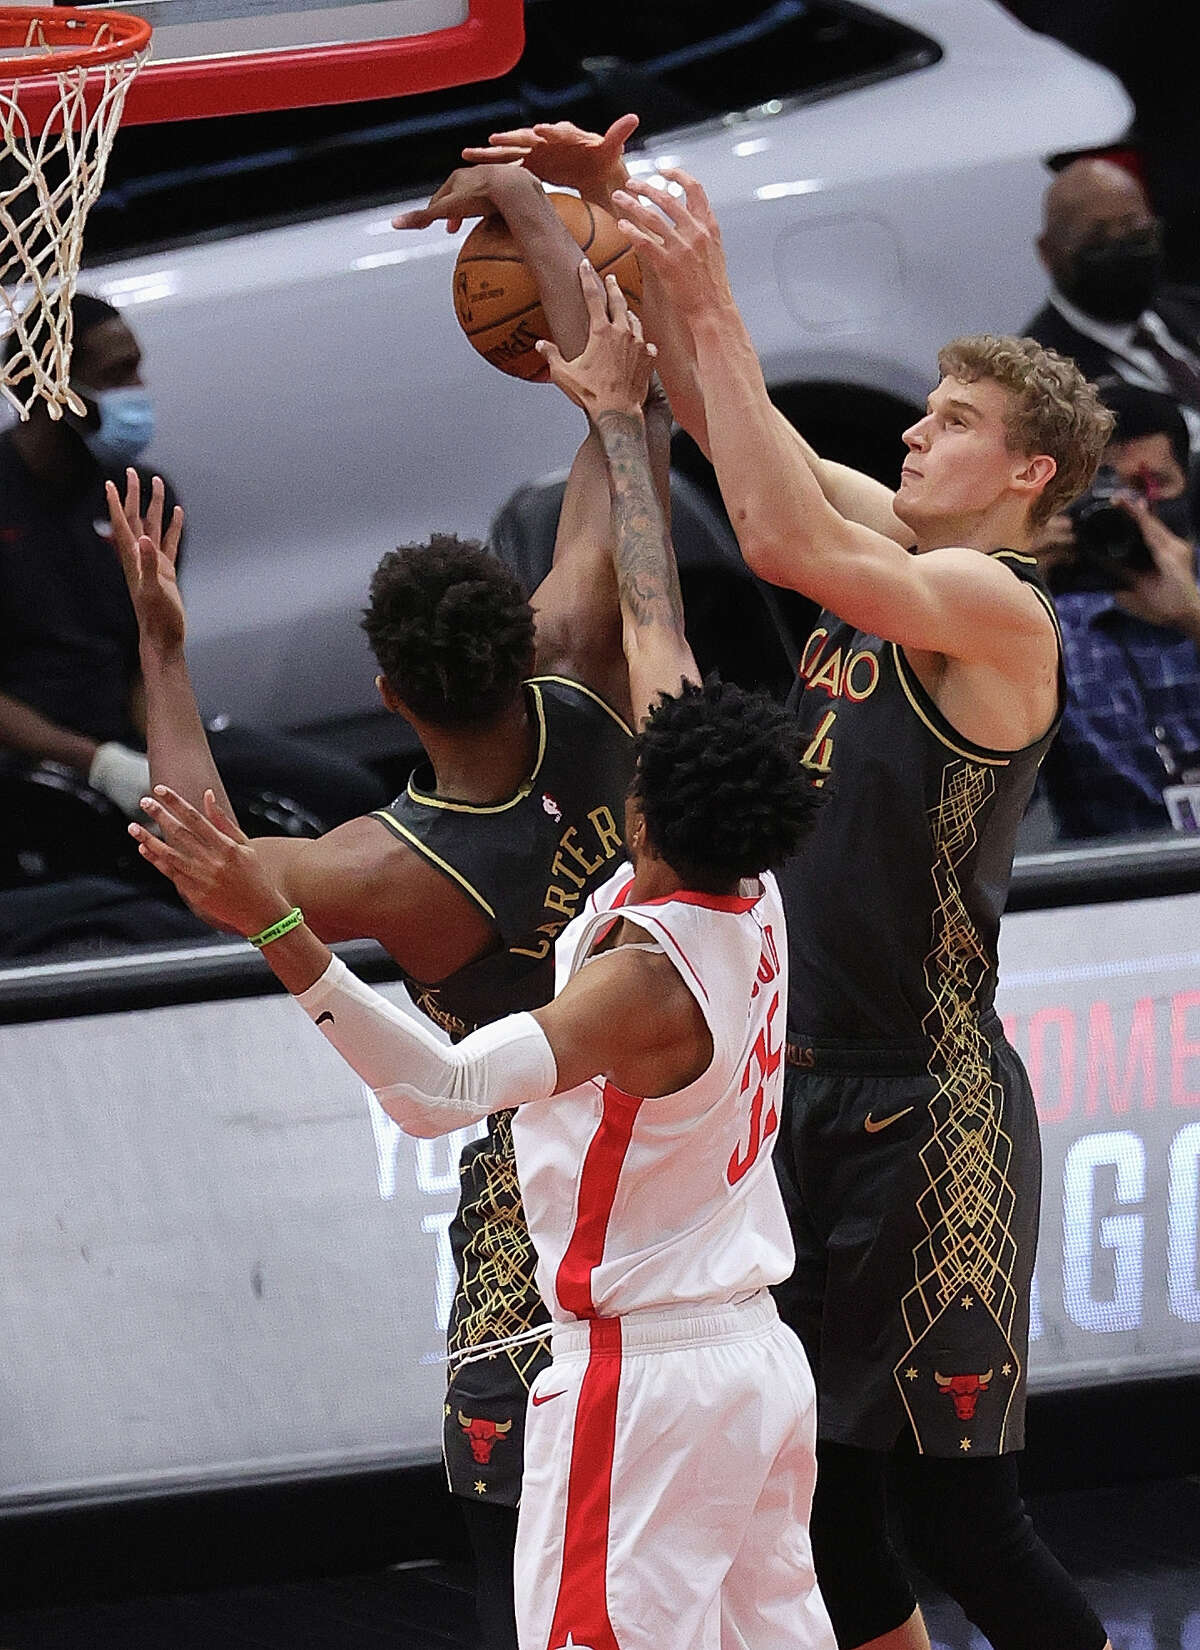 CHICAGO, ILLINOIS - JANUARY 18: Lauri Markkanen #24 (R) and Wendell Carter Jr. #34 of the Chicago Bulls battle for a rebound with Christian Wood #35 of the Houston Rockets at the United Center on January 18, 2021 in Chicago, Illinois. NOTE TO USER: User expressly acknowledges and agrees that, by downloading and or using this photograph, User is consenting to the terms and conditions of the Getty Images License Agreement. (Photo by Jonathan Daniel/Getty Images)